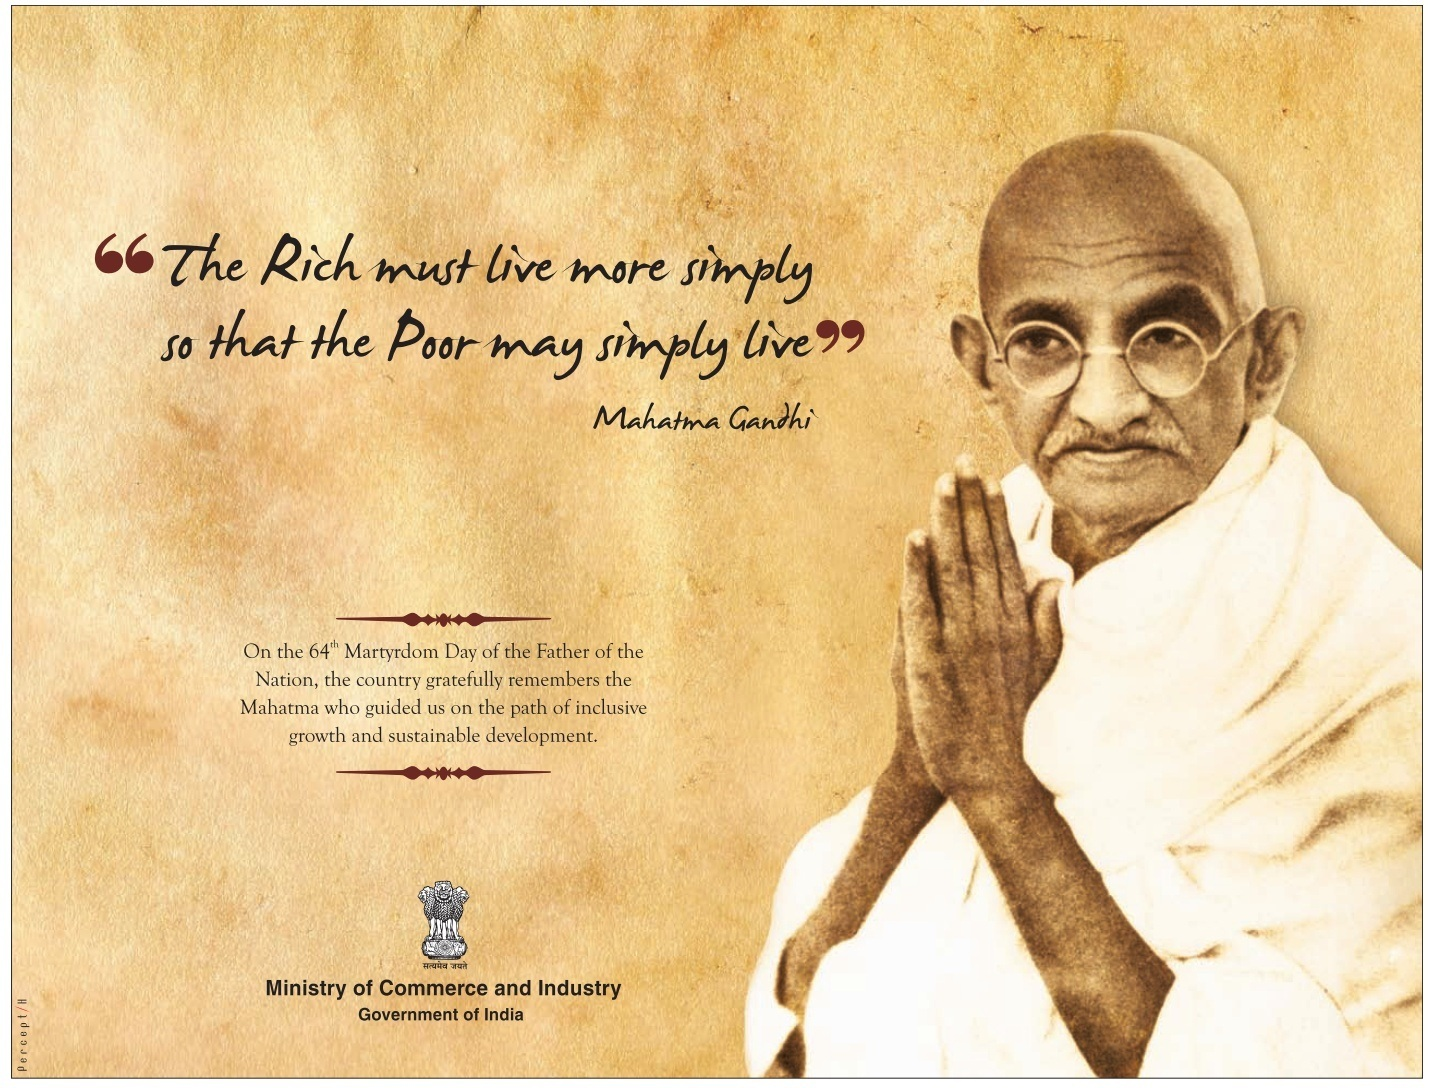 mahatma gandhi quotes essay 524 words essay on you must be the change you wish to see in the world - mahatma gandhi quote meaning of you must be the change you wish to see in the world - mahatma.